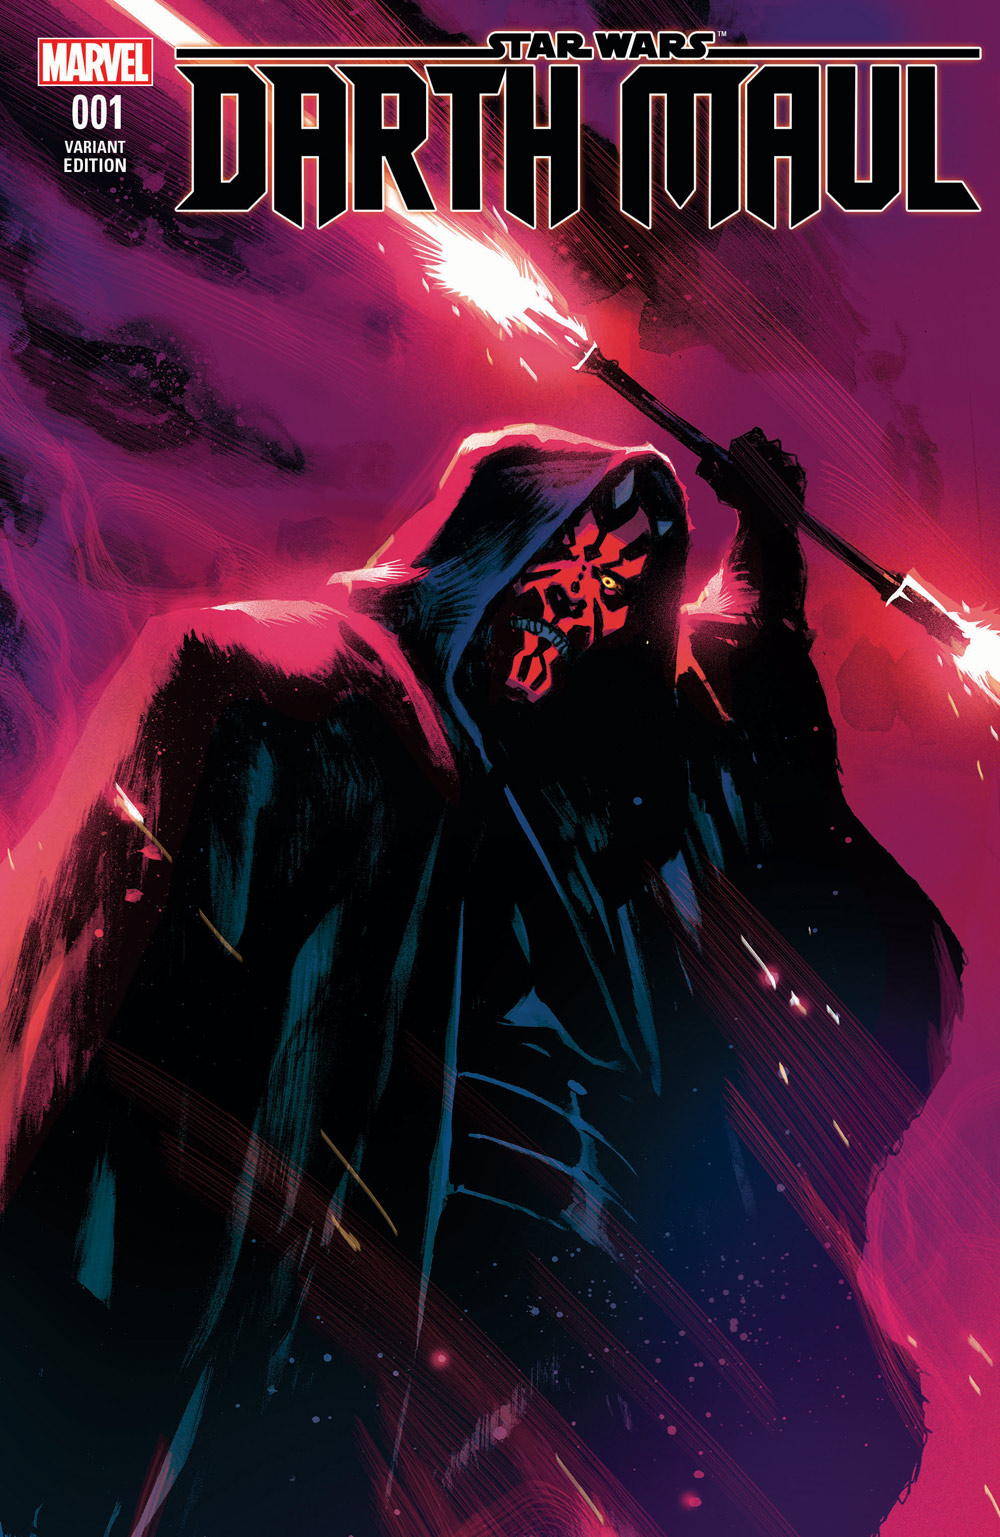 Darth-Maul-Star-Wars-Rafael-Albuquerque-cover